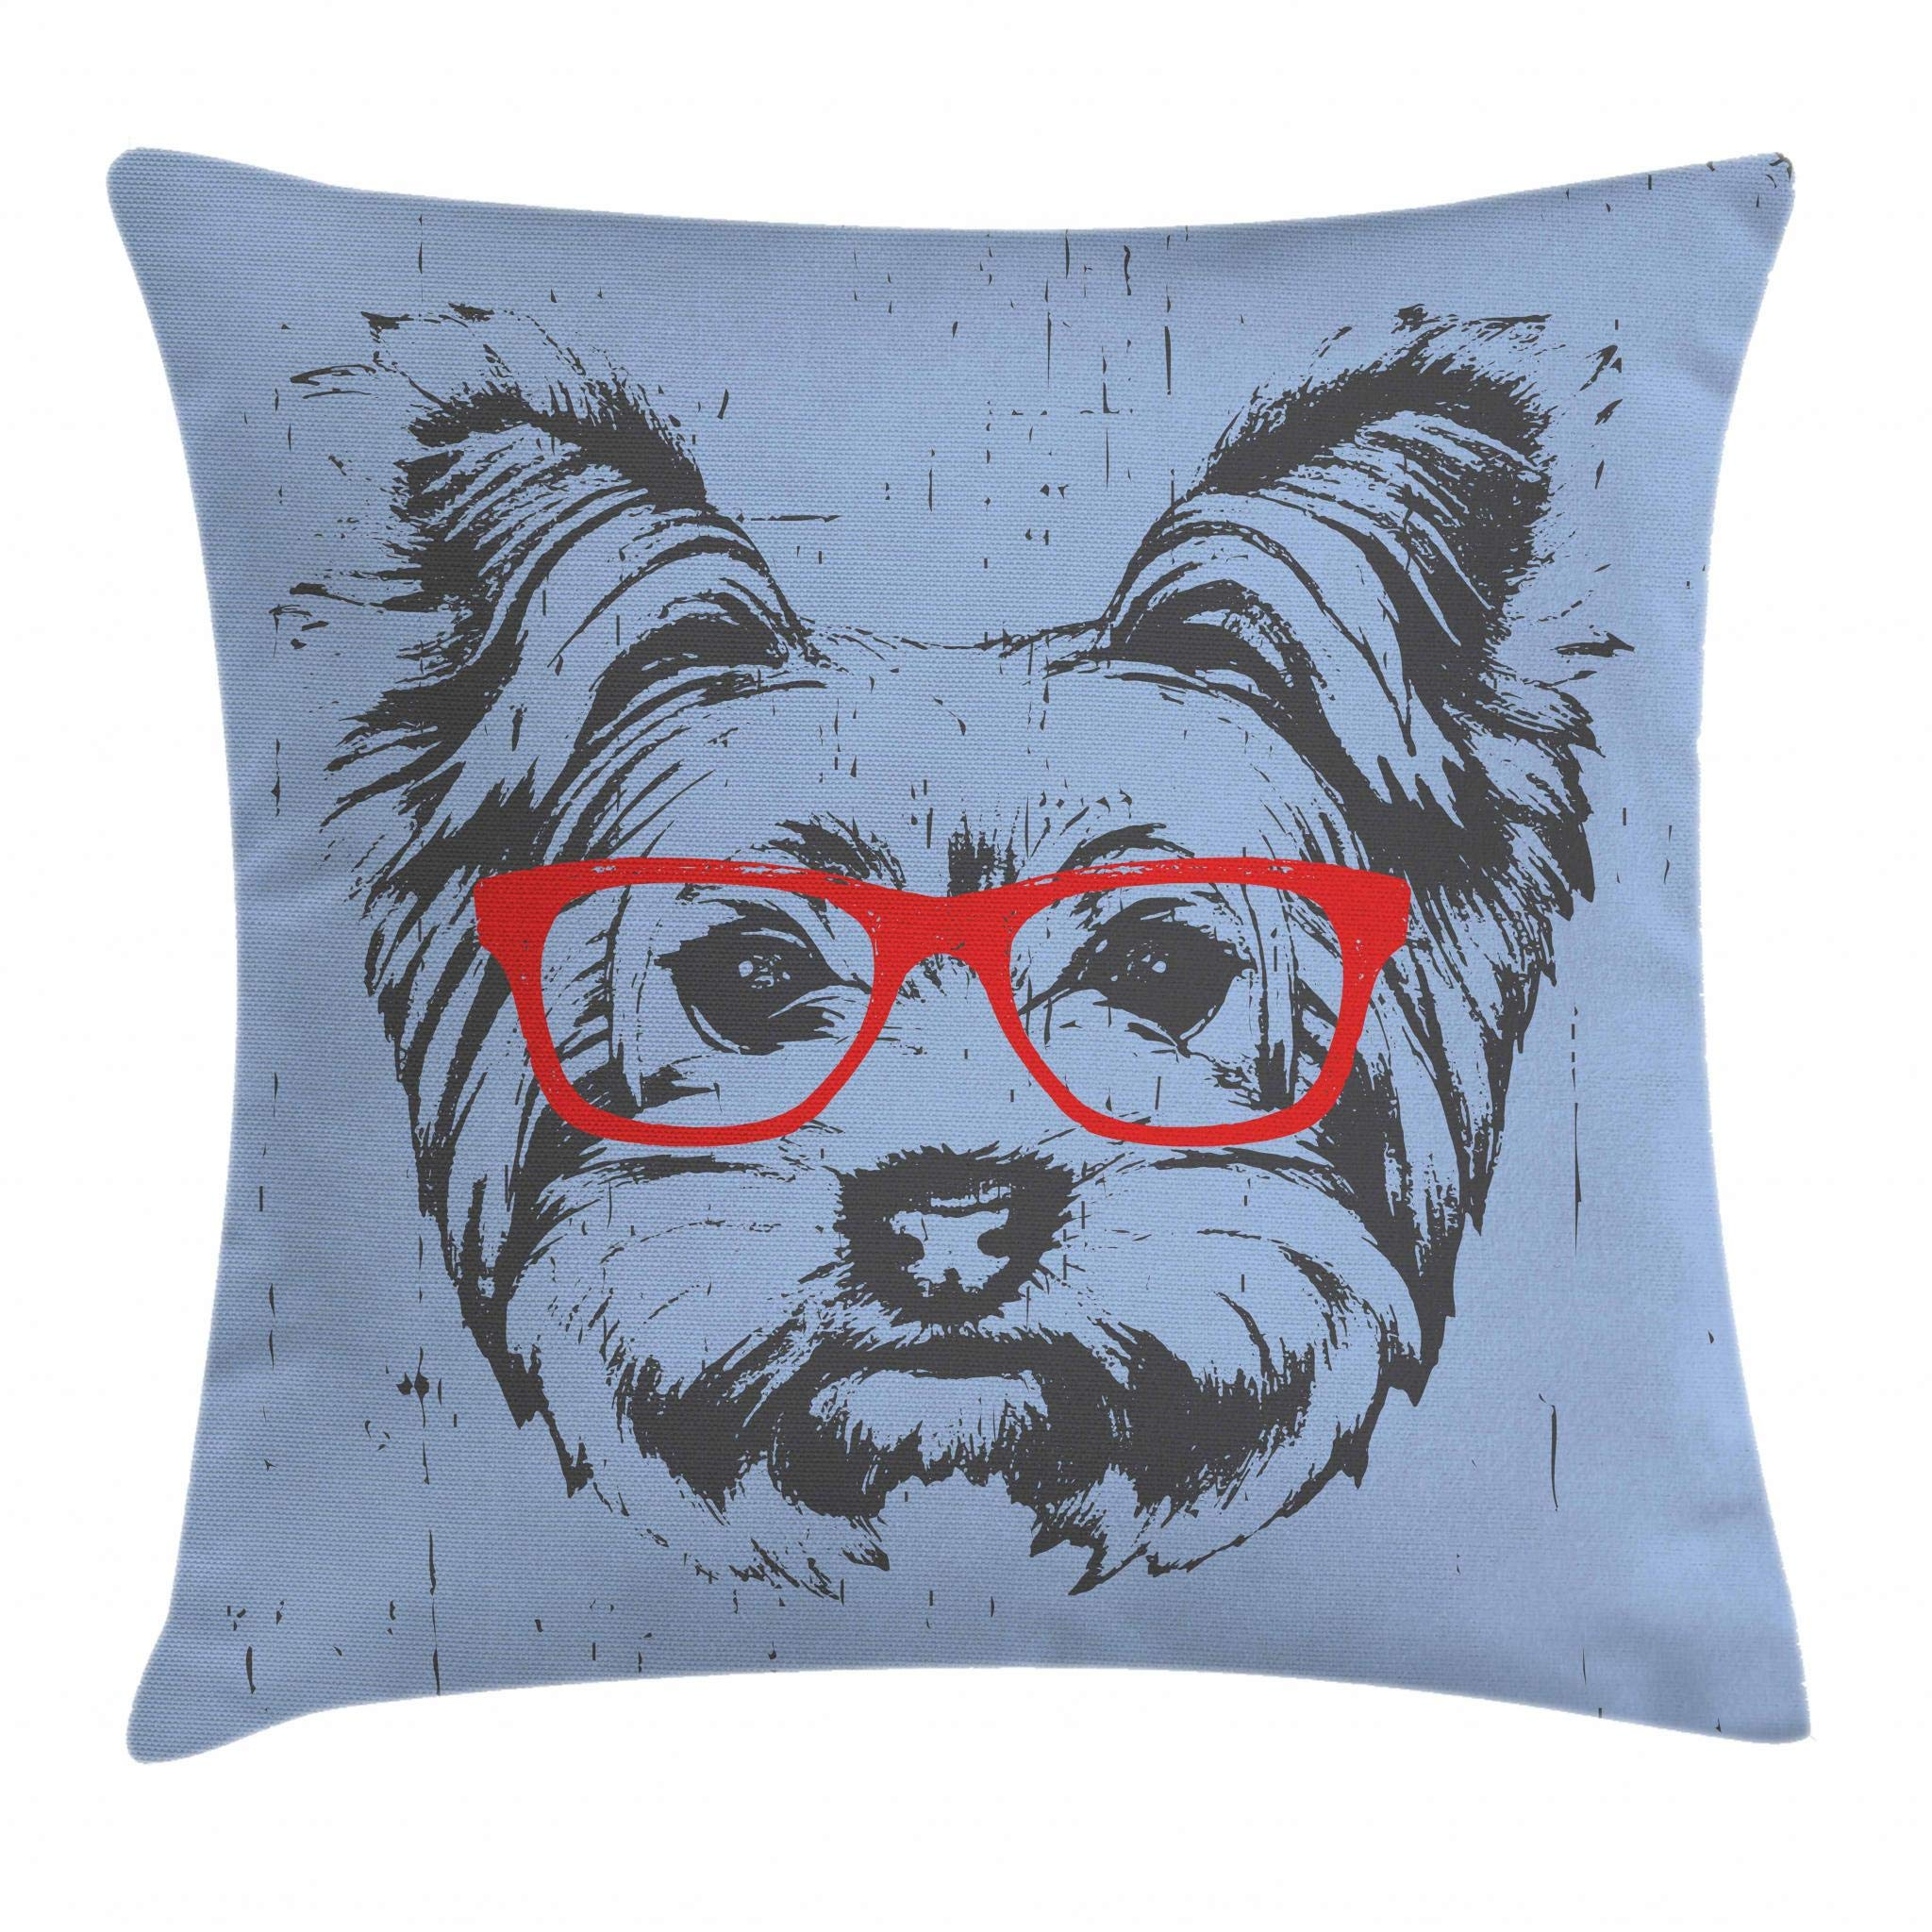 Ambesonne Yorkie Throw Pillow Cushion Cover, Yorkshire Terrier Portrait Red Nerd Glasses Tainted Backdrop Animal, Decorative Square Accent Pillow Case, 16 X 16 Inches, Pale Blue Grey Vermilion